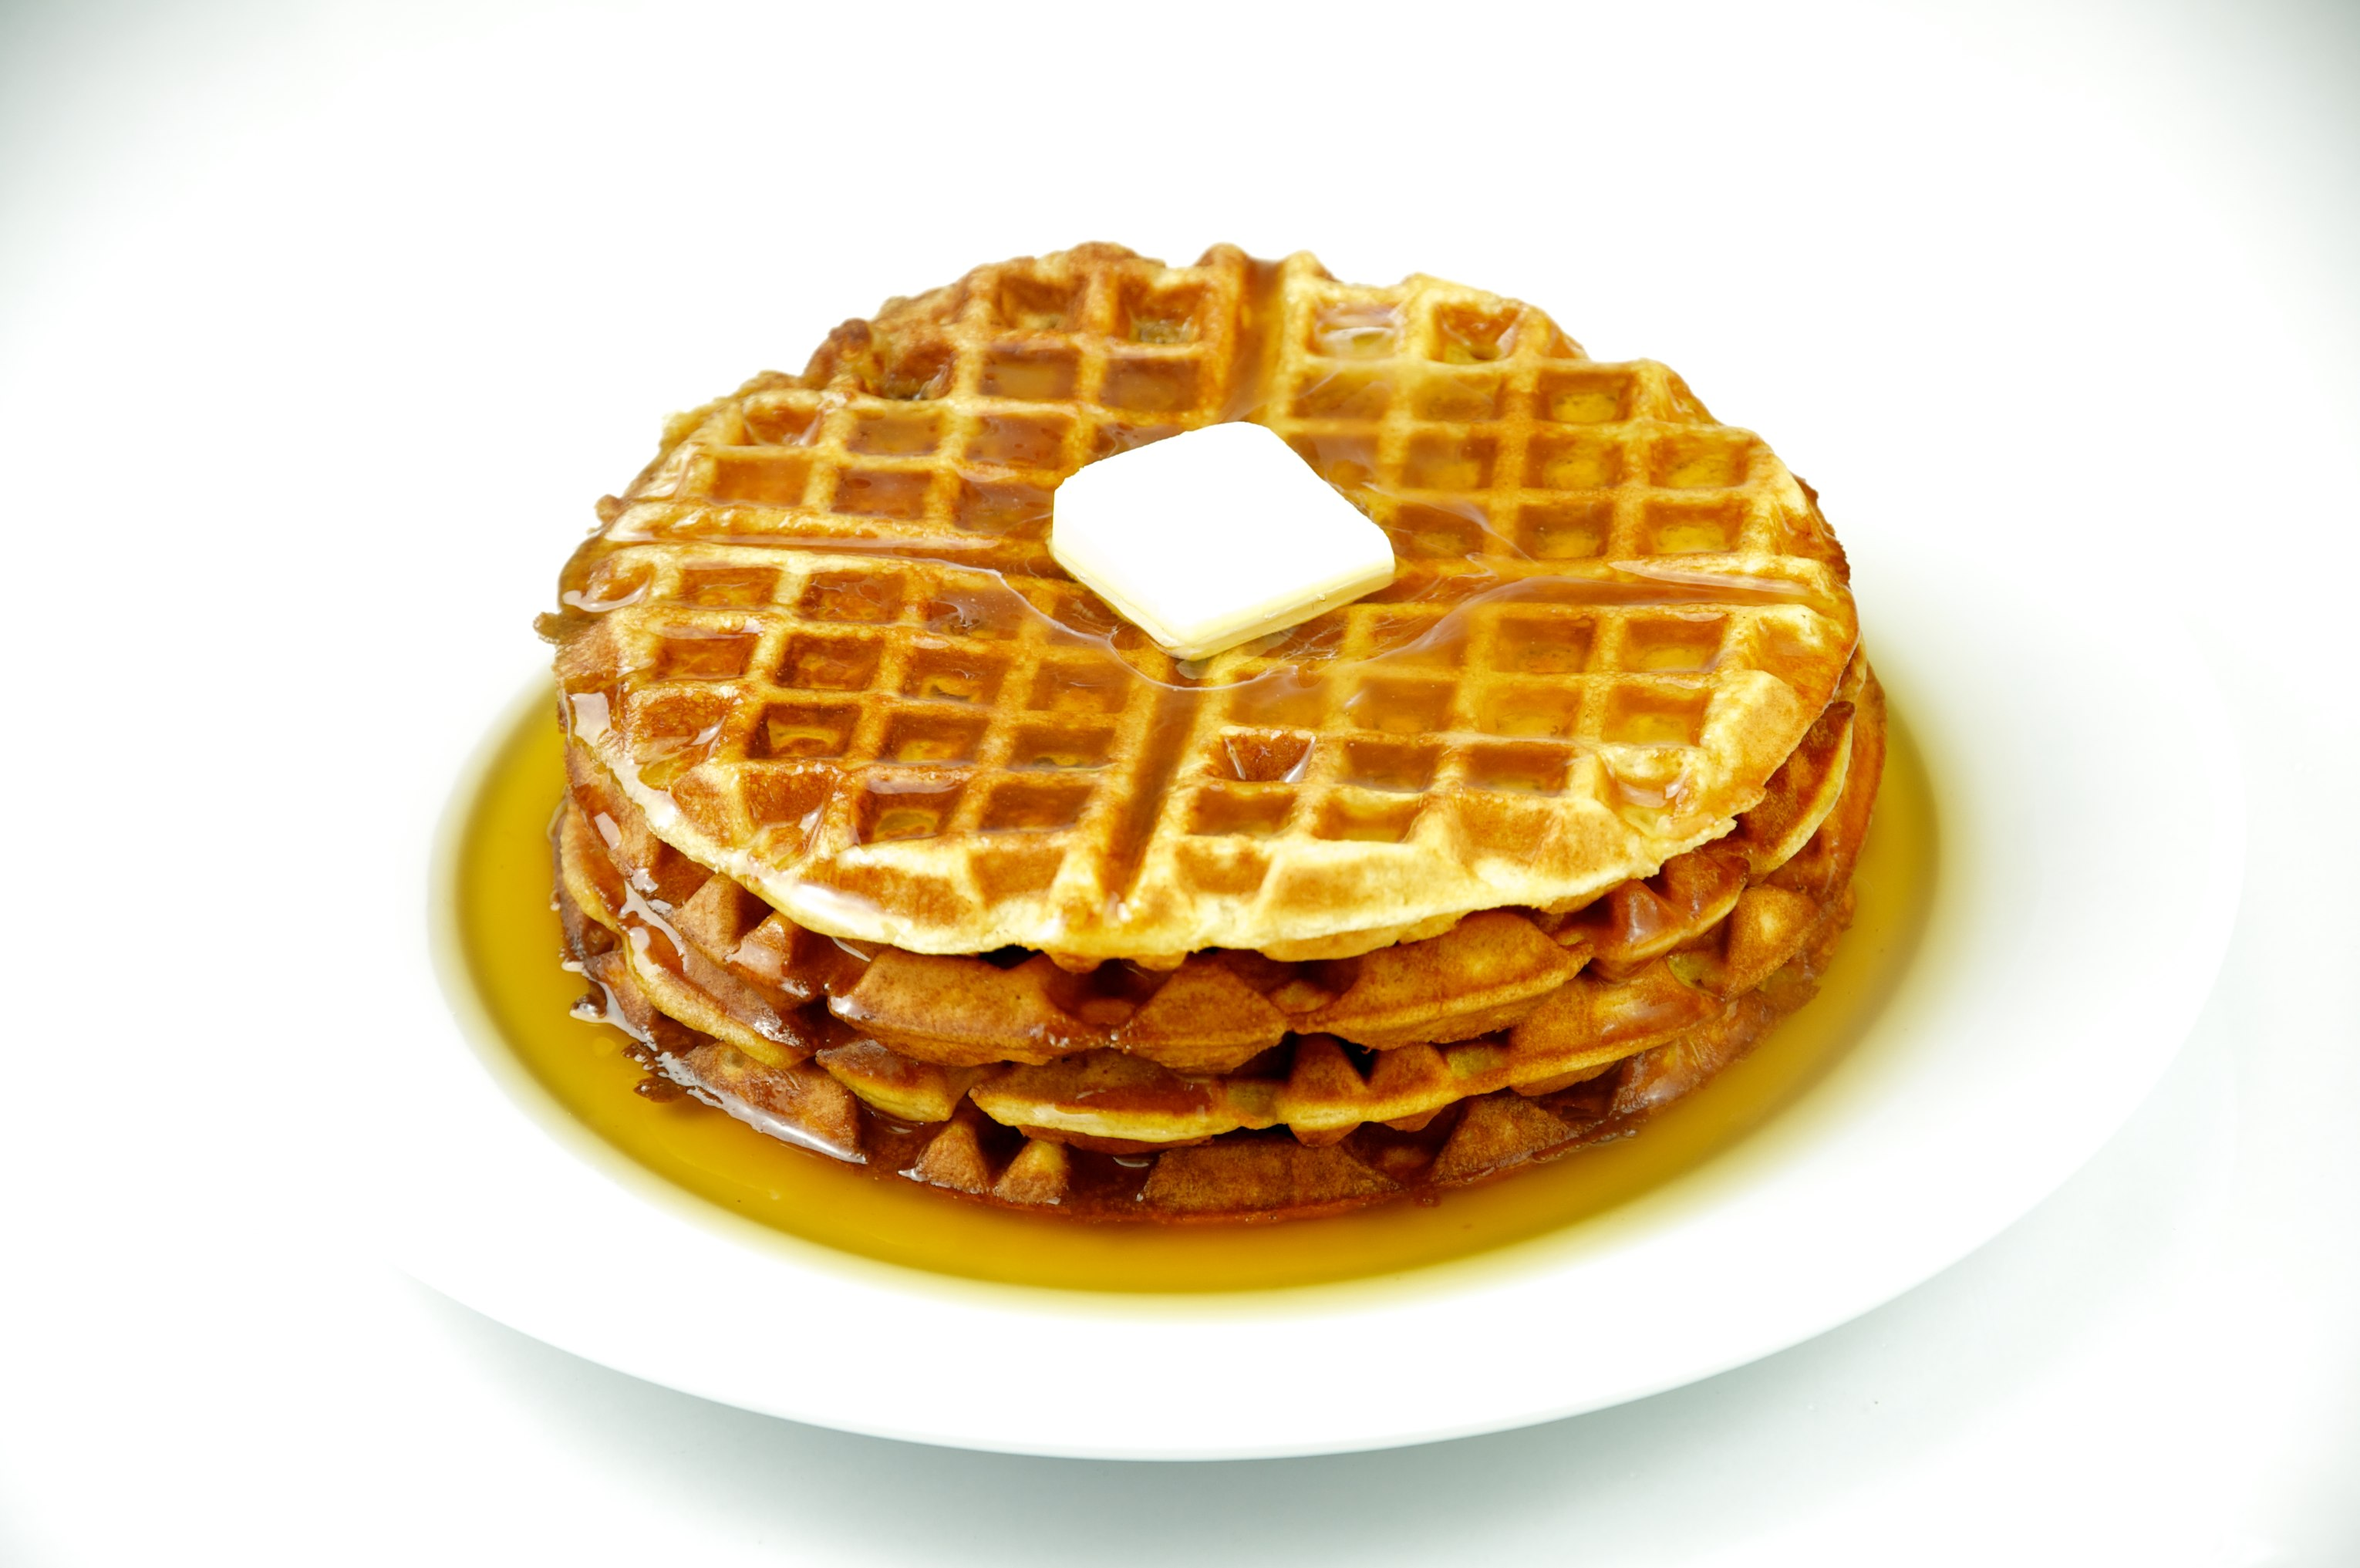 Description Waffles with maple syrup and butter.jpg